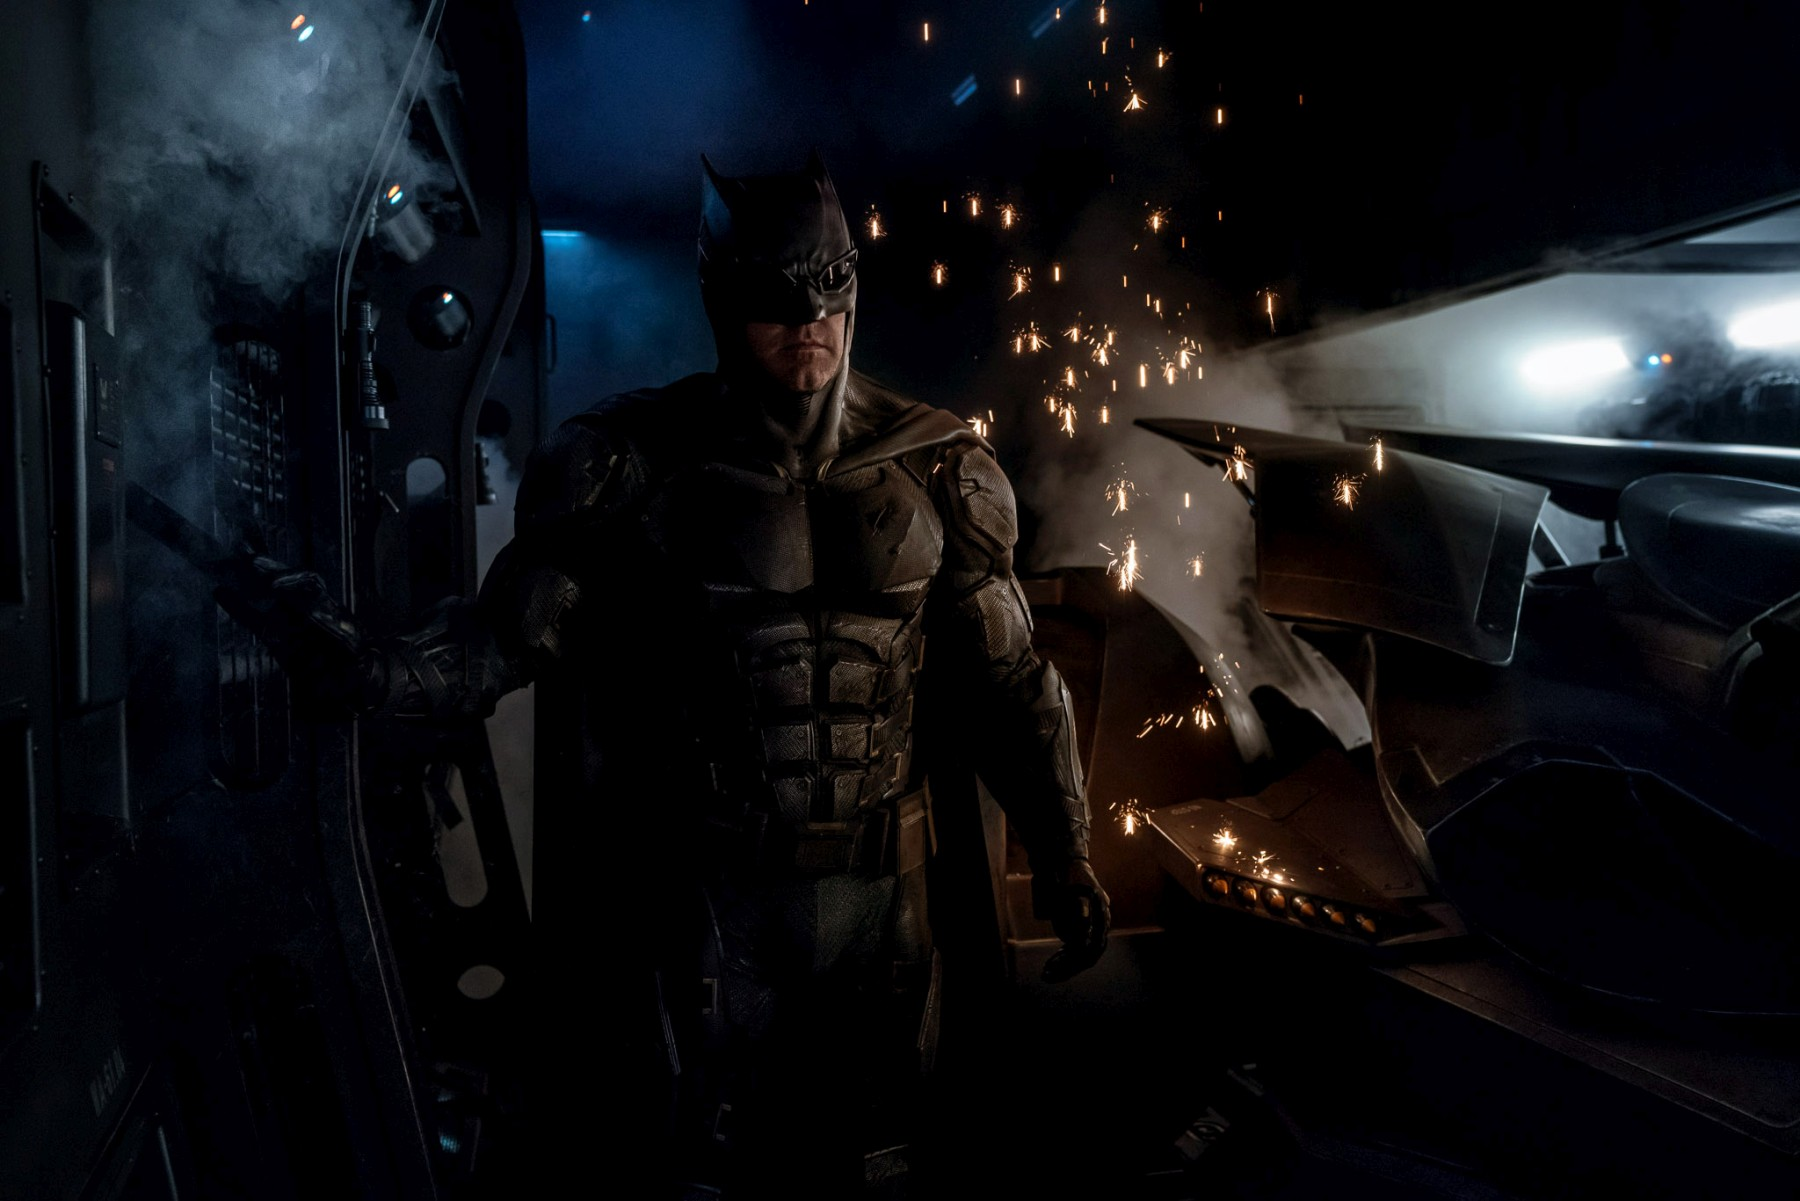 'Justice League's Ben Affleck Weighs In On Term Batfleck